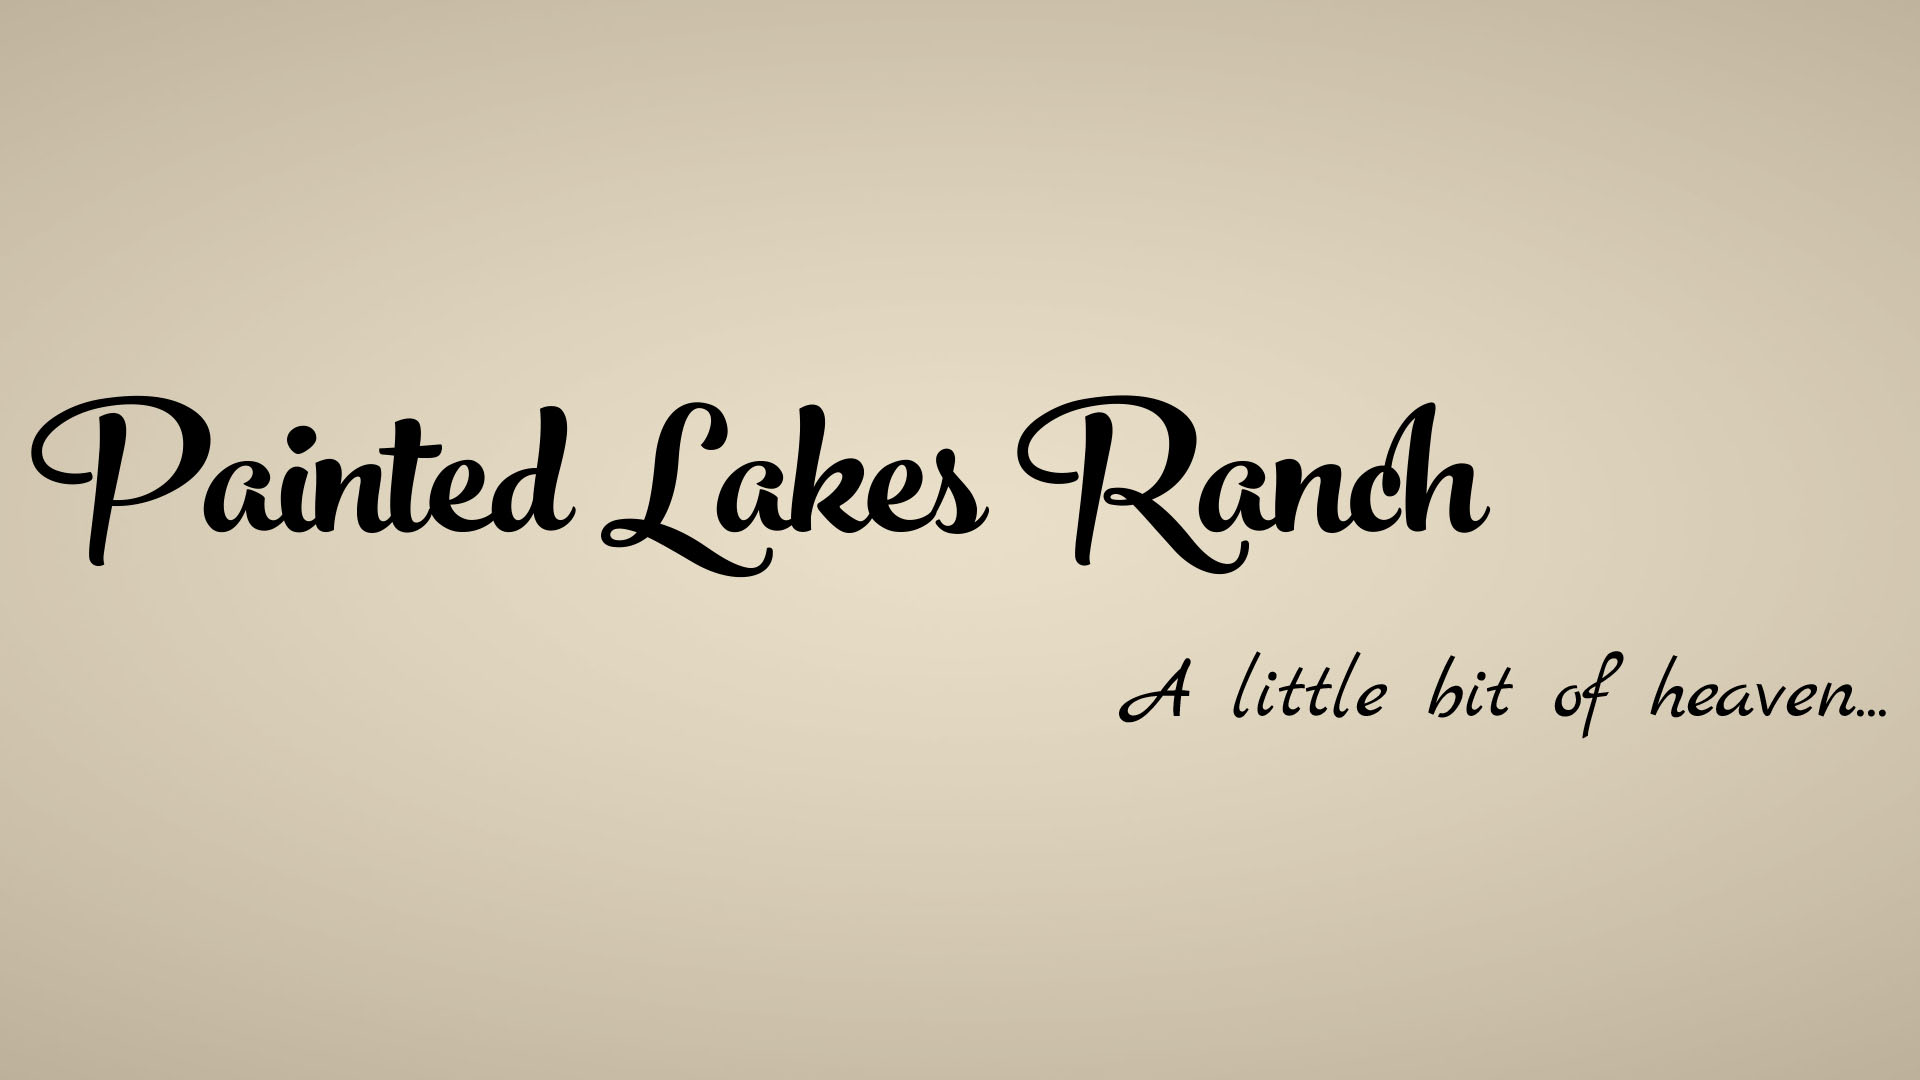 Painted Lakes Ranch